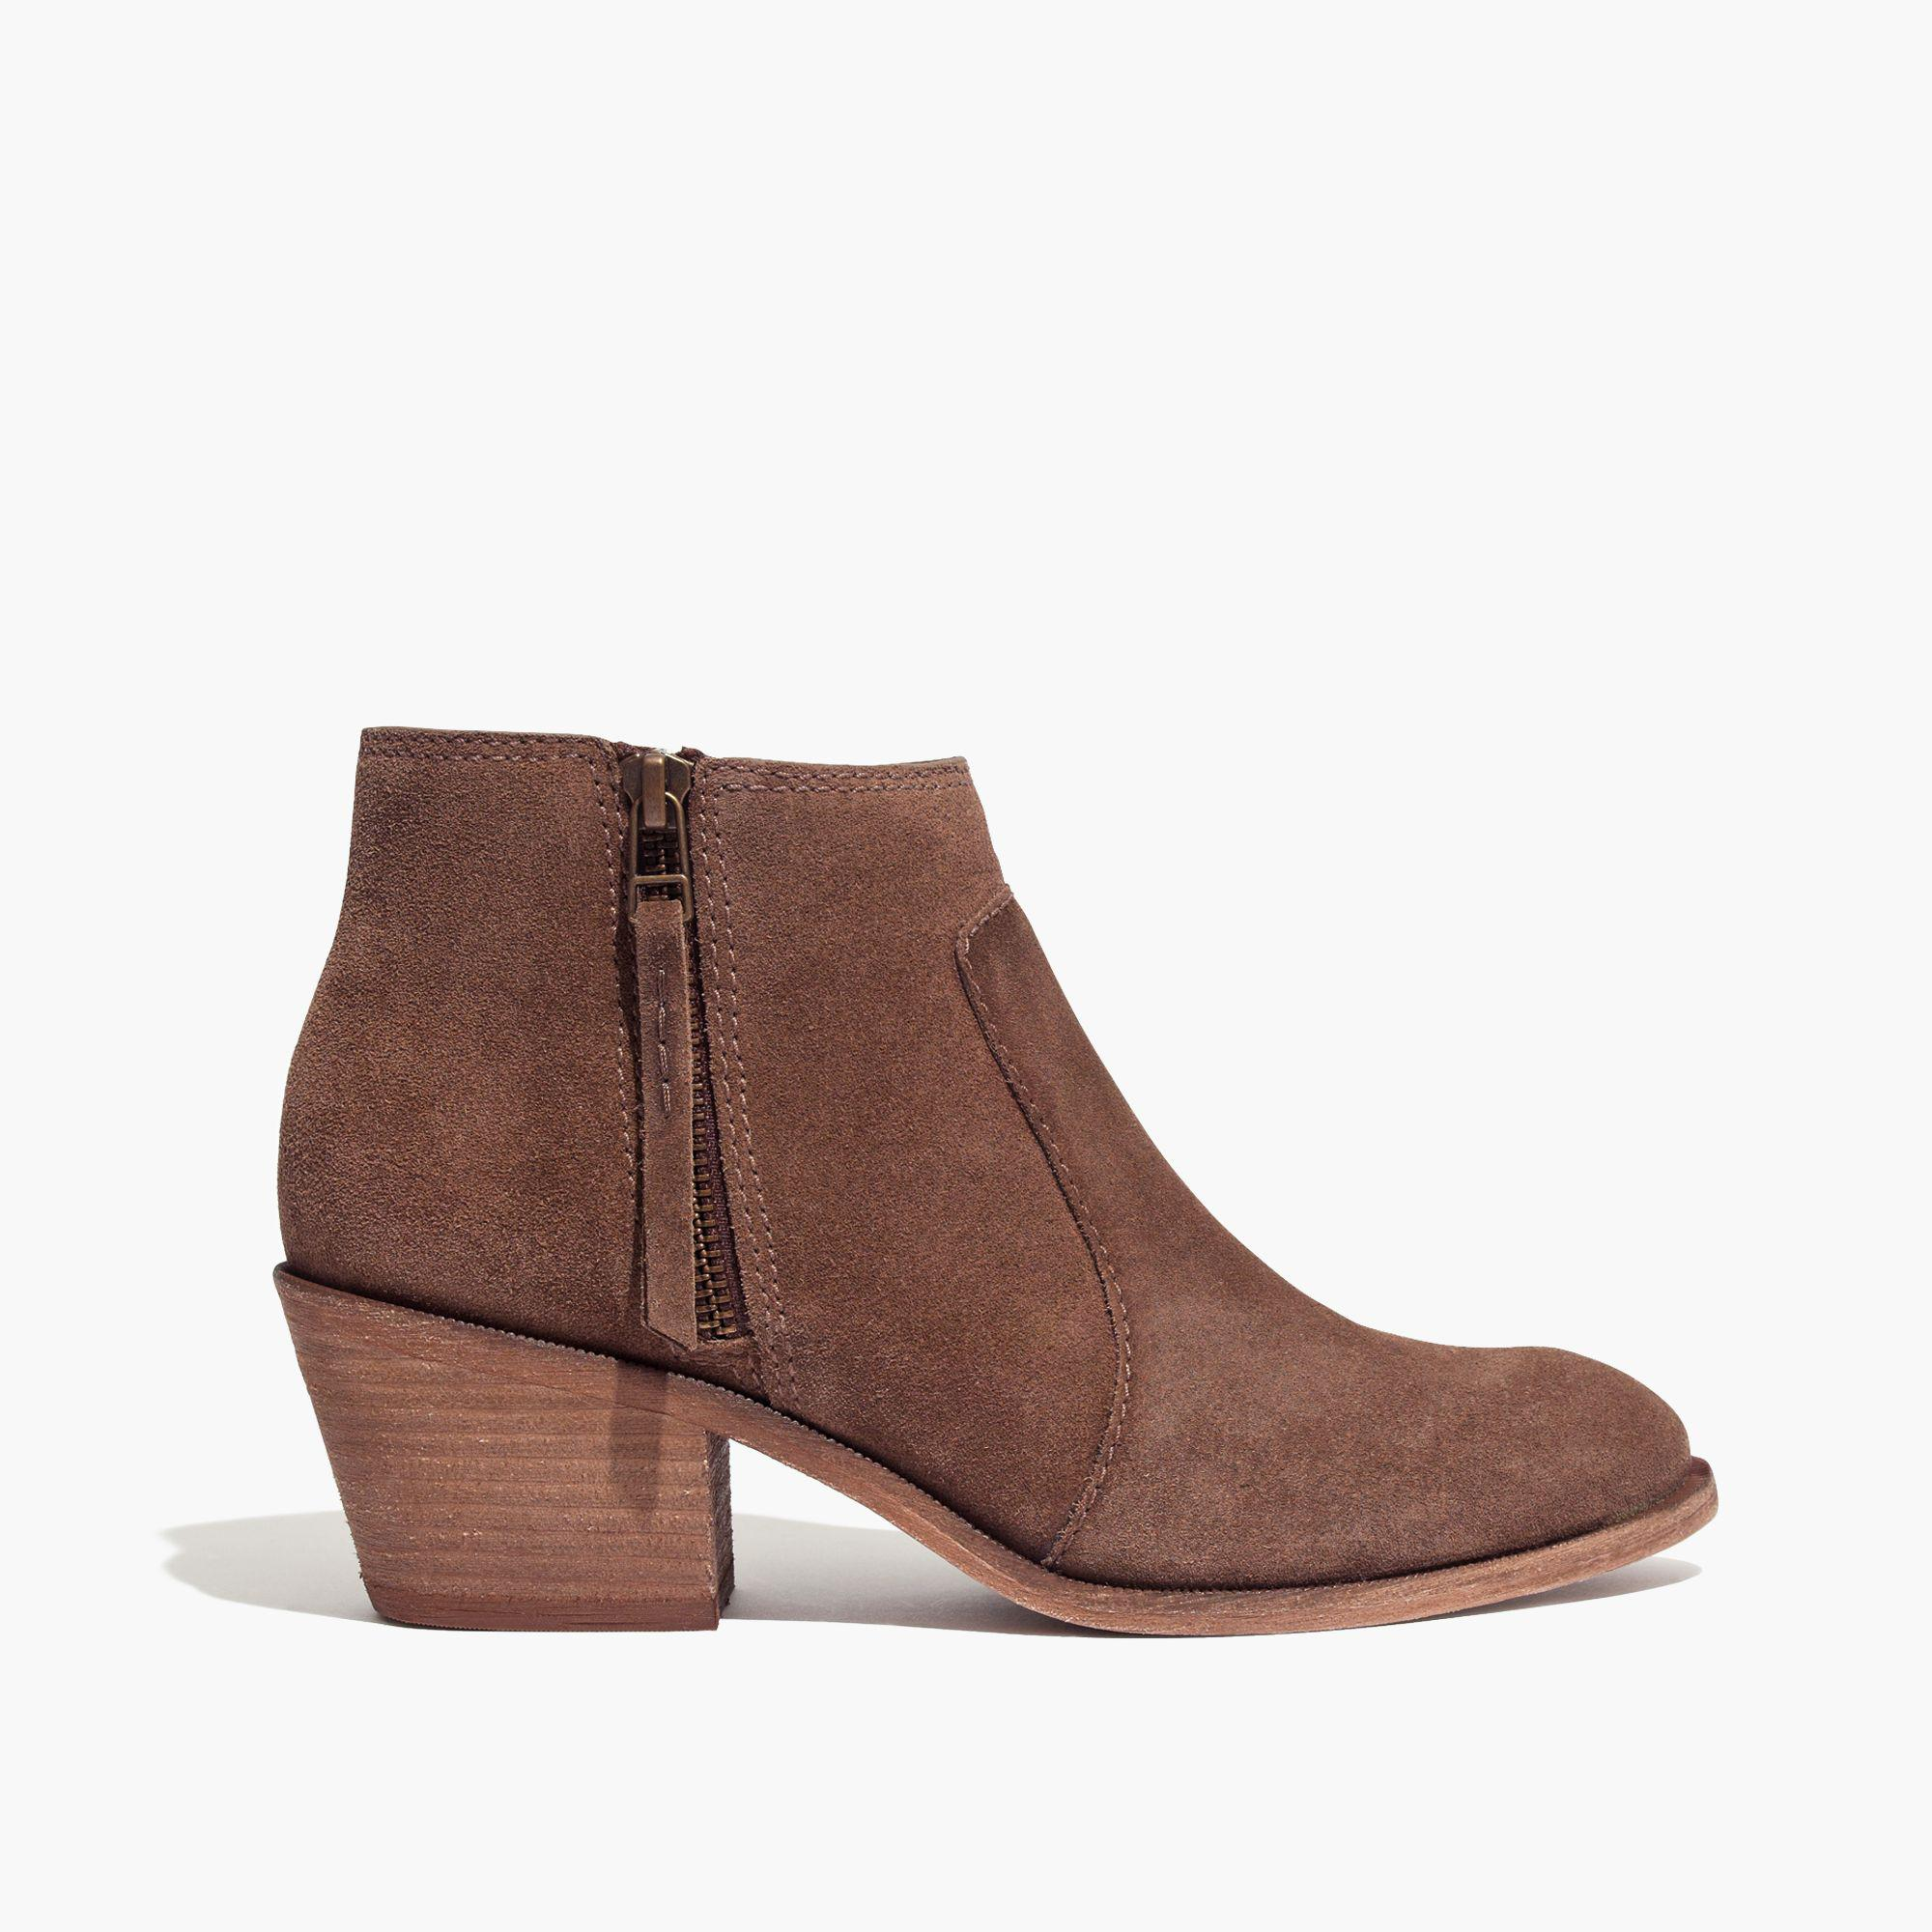 Madewell The Janice Boot In Suede